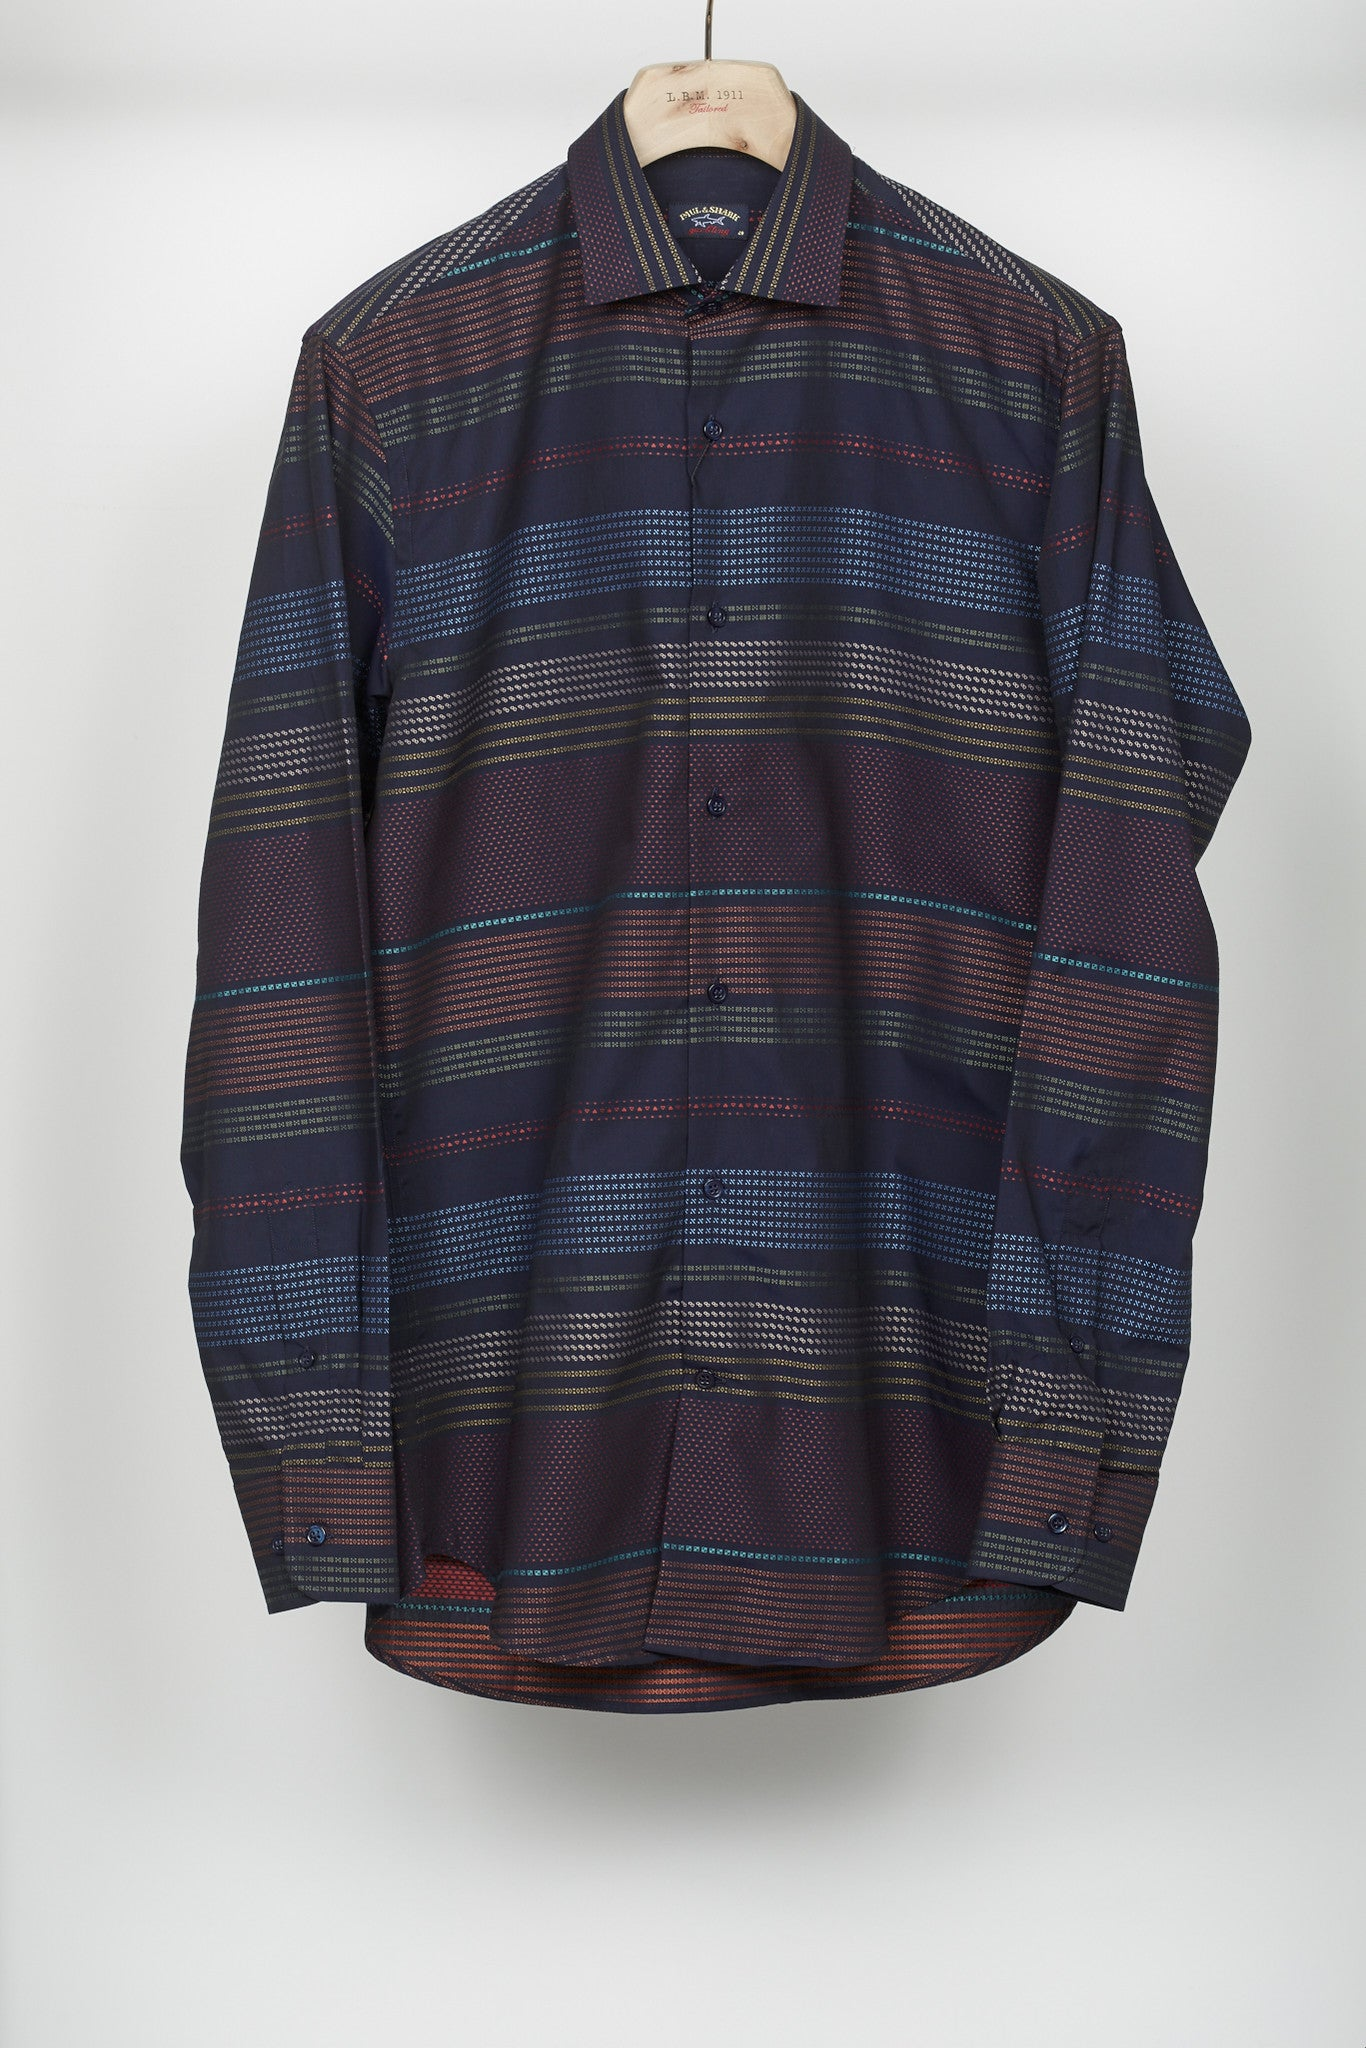 Paul & Shark Multi-Coloured Jacquard Shirt